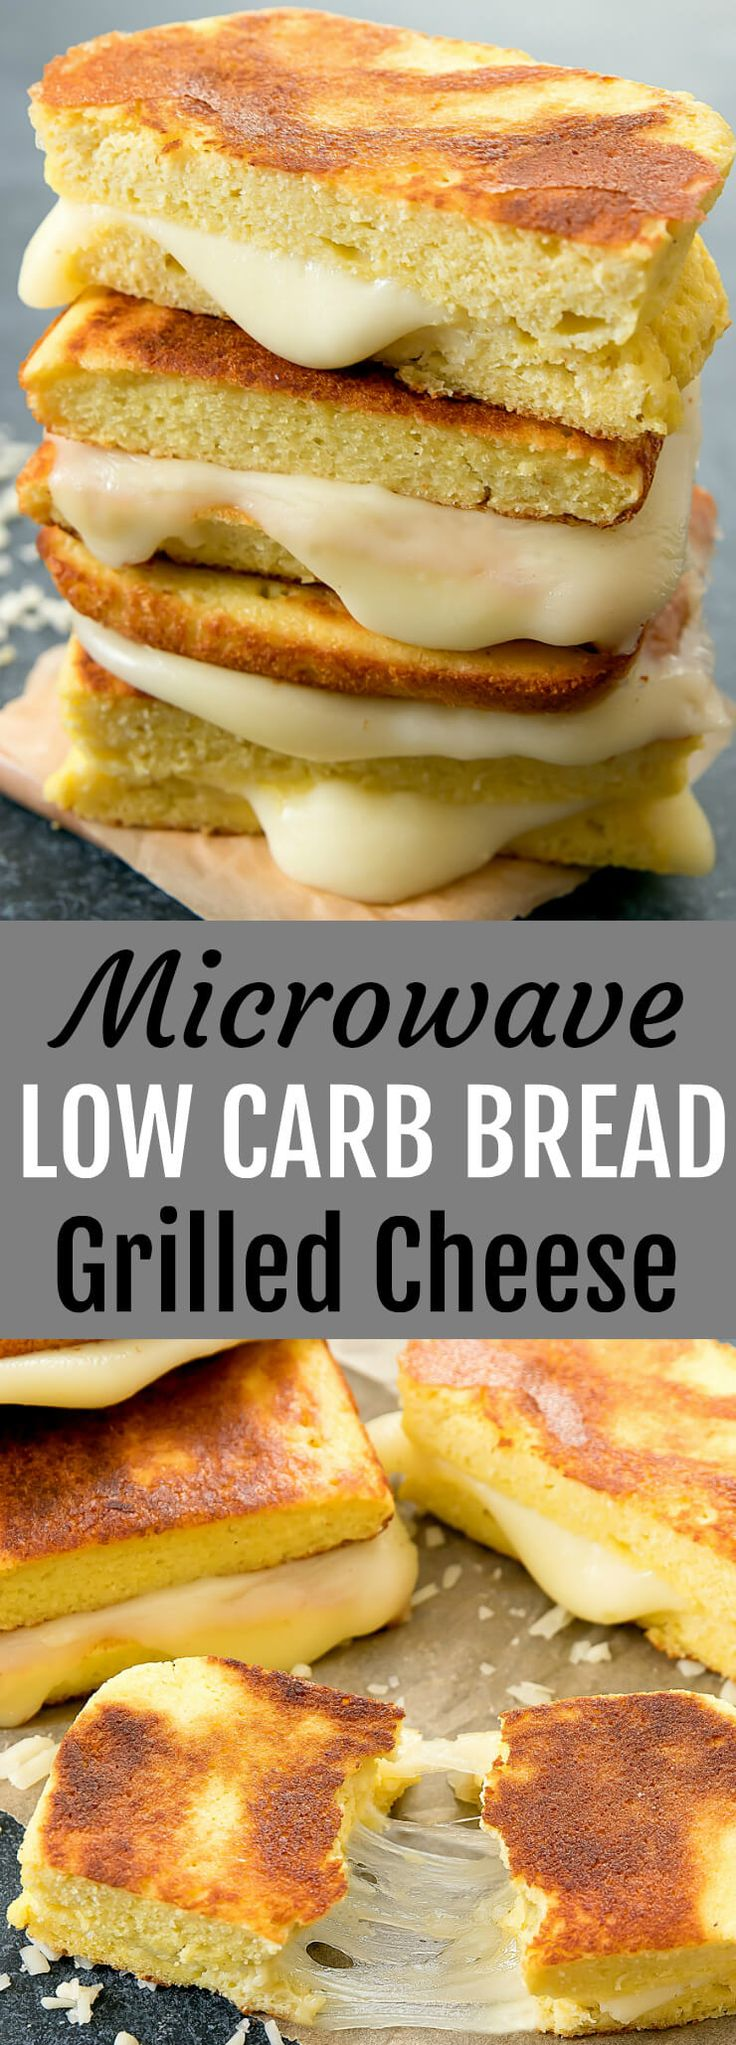 Microwave Low Carb Bread Grilled Cheese. This grilled cheese sandwich is made with a super easy low carb bread that cooks in the microwave. Oven version also provided.